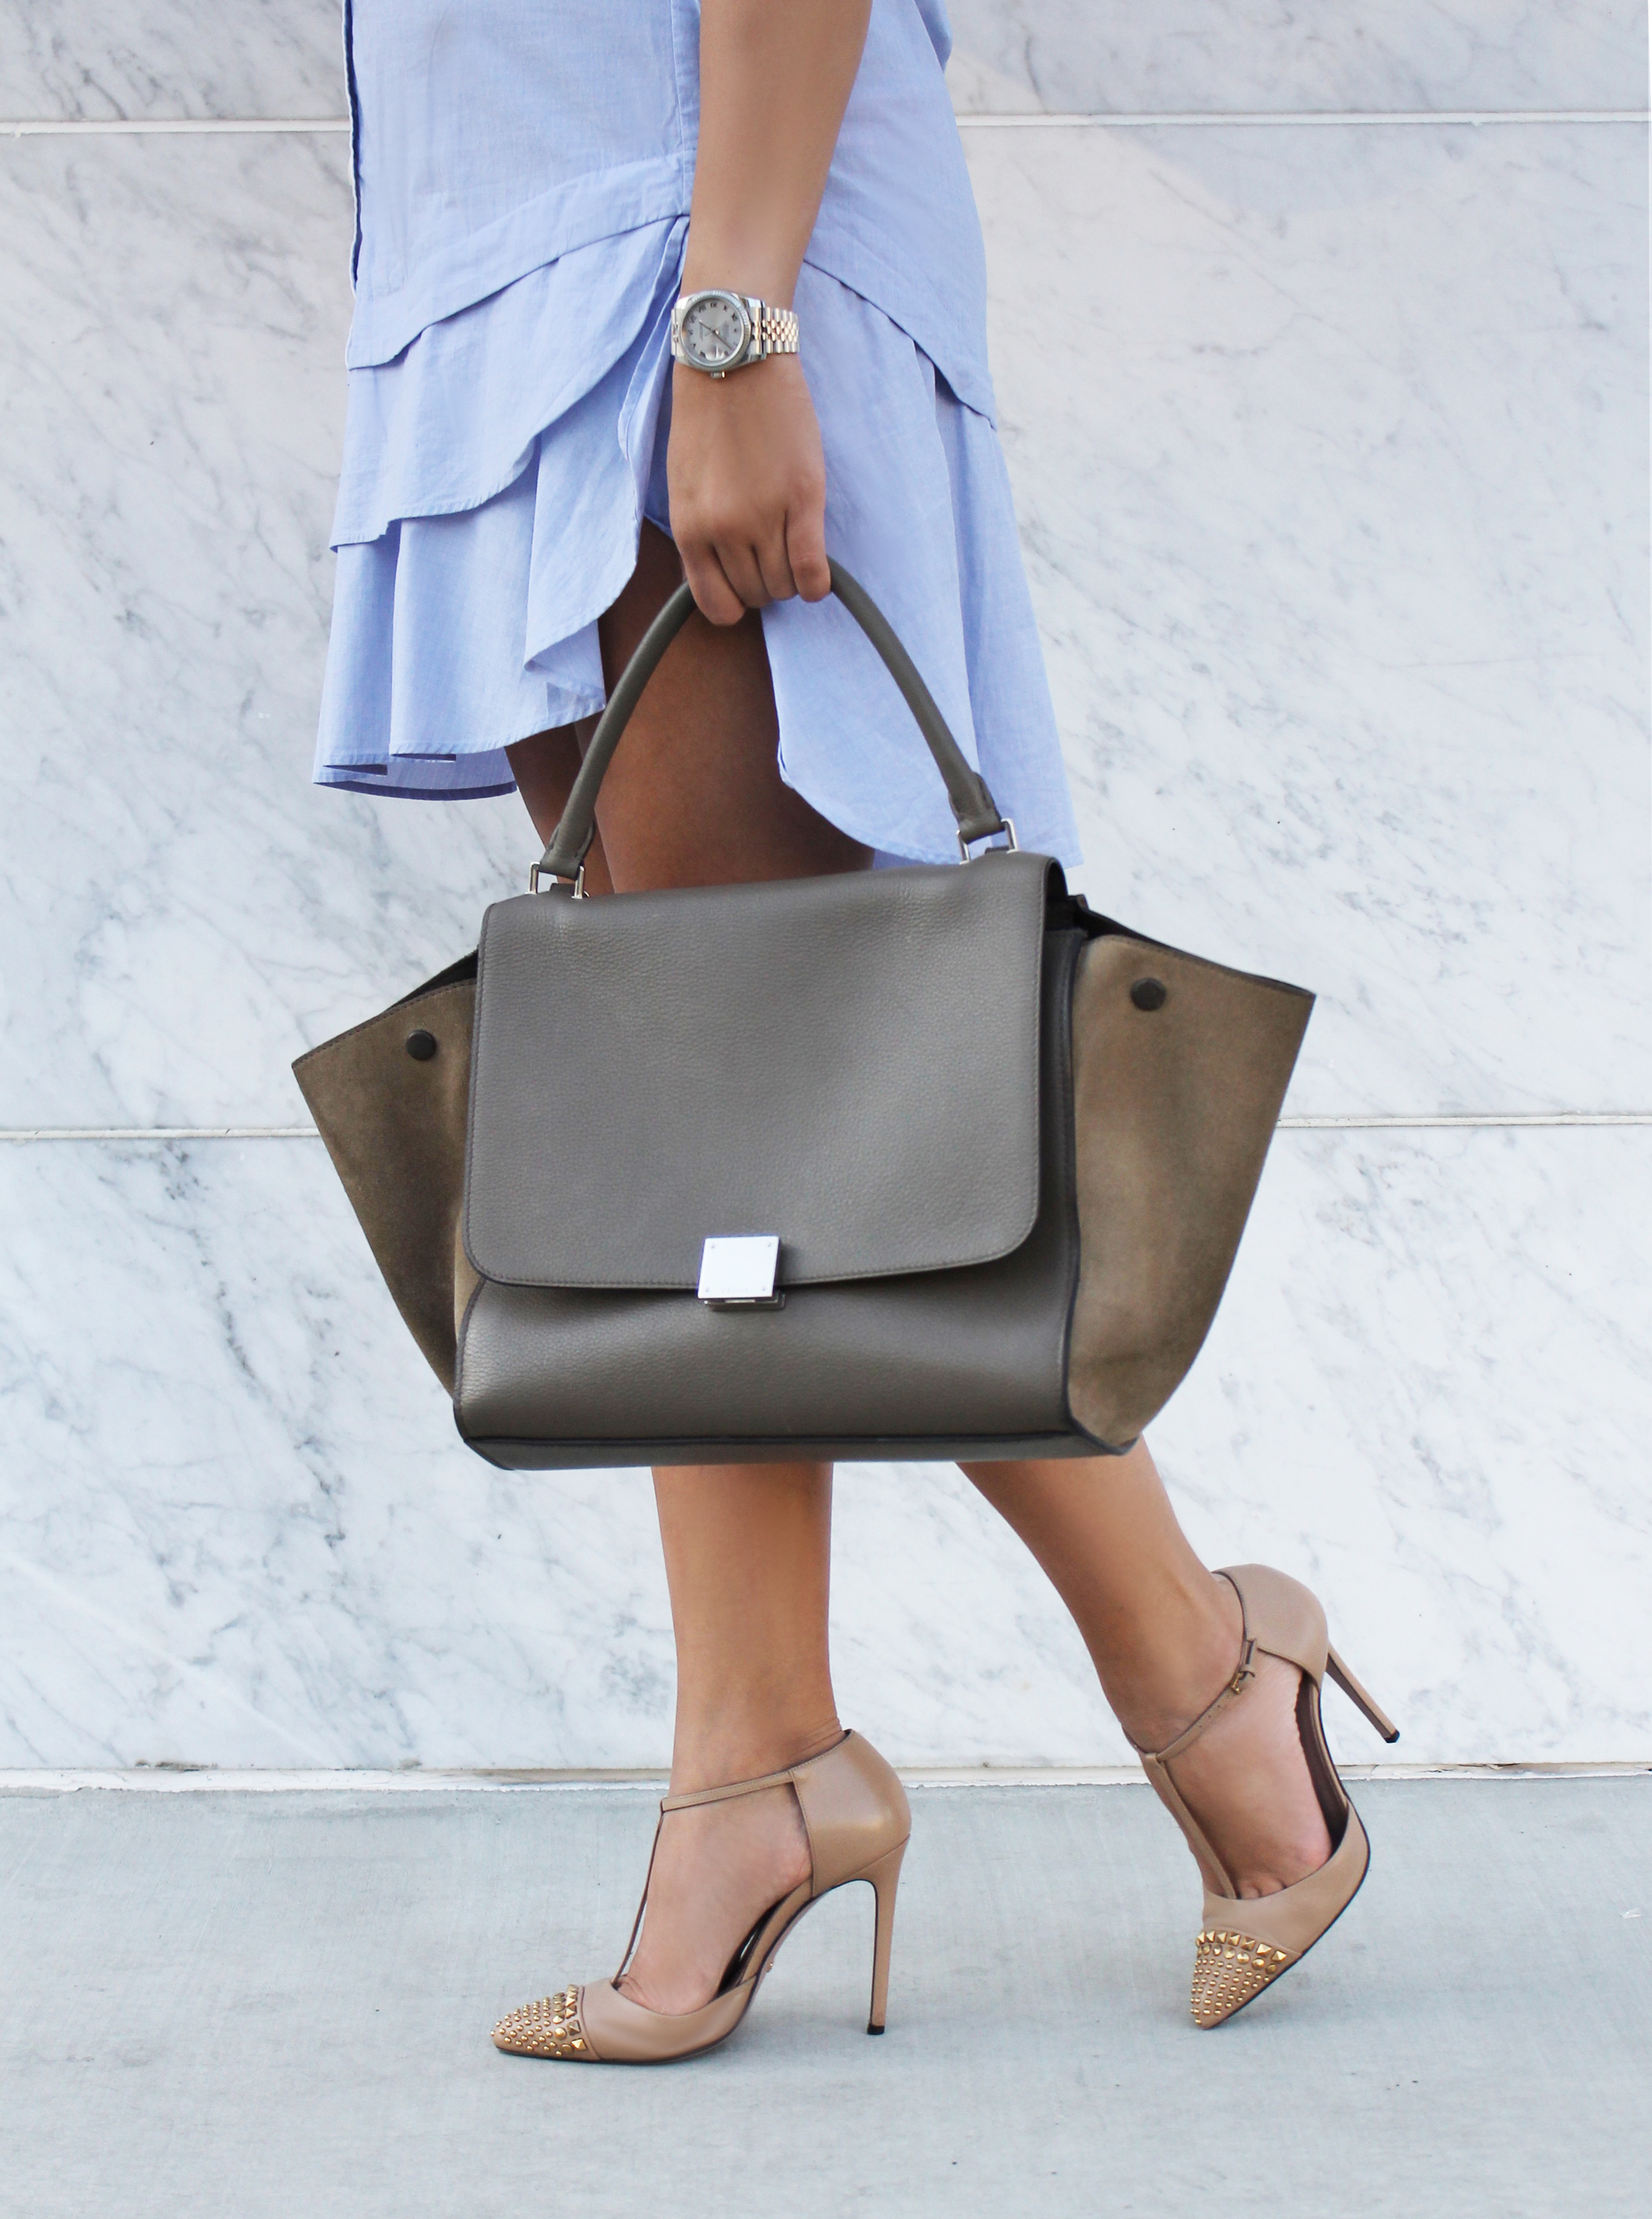 Mel Ronnie Shirt Dress Outfit - Celine, Gucci, Banana Republic - Nude, Blue, Silver, Gold, Taupe